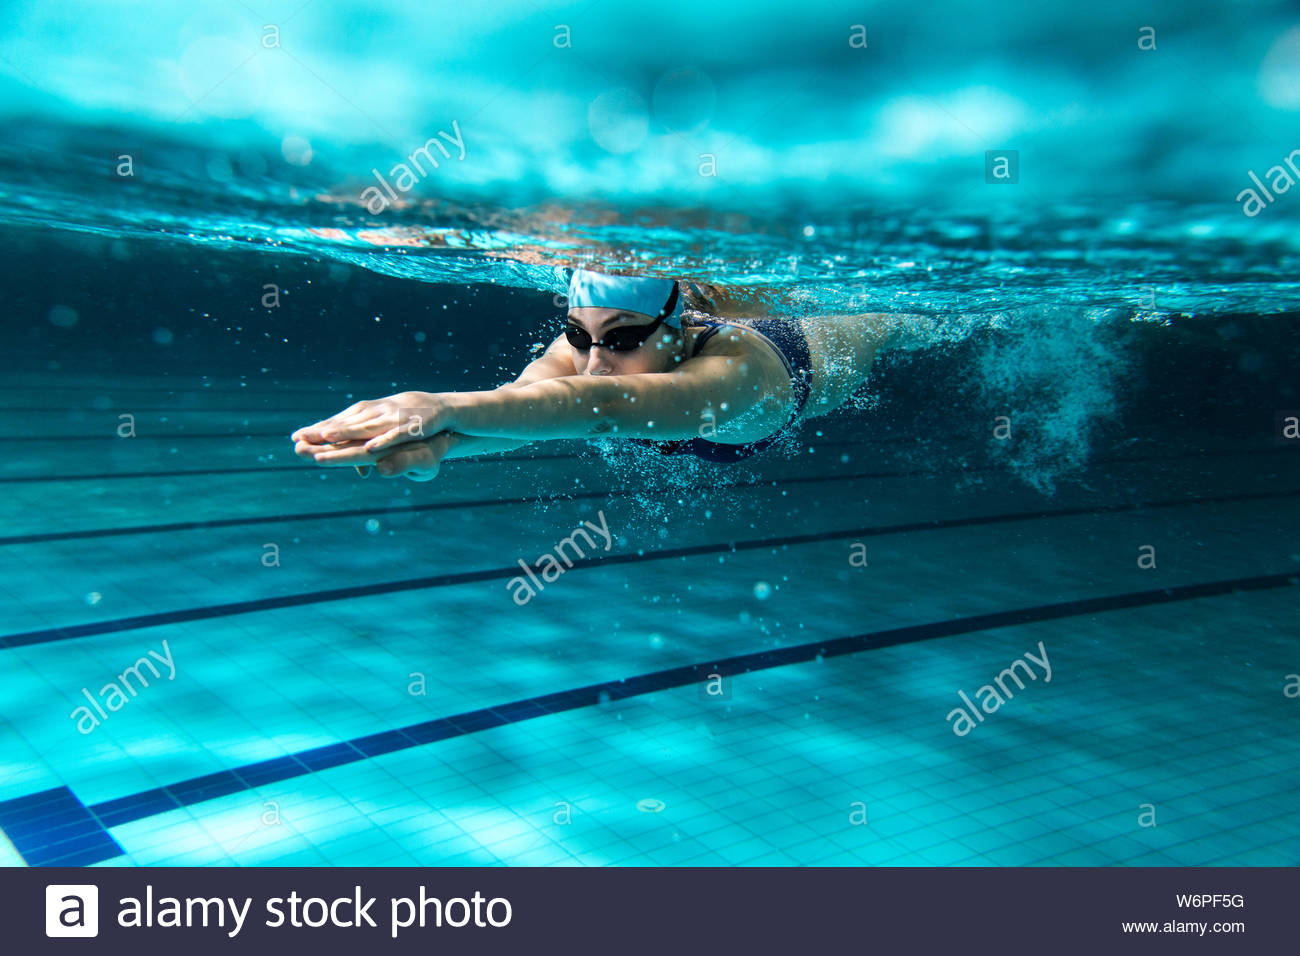 Swimmers at the swimming pool.Underwater photo Stock Photo